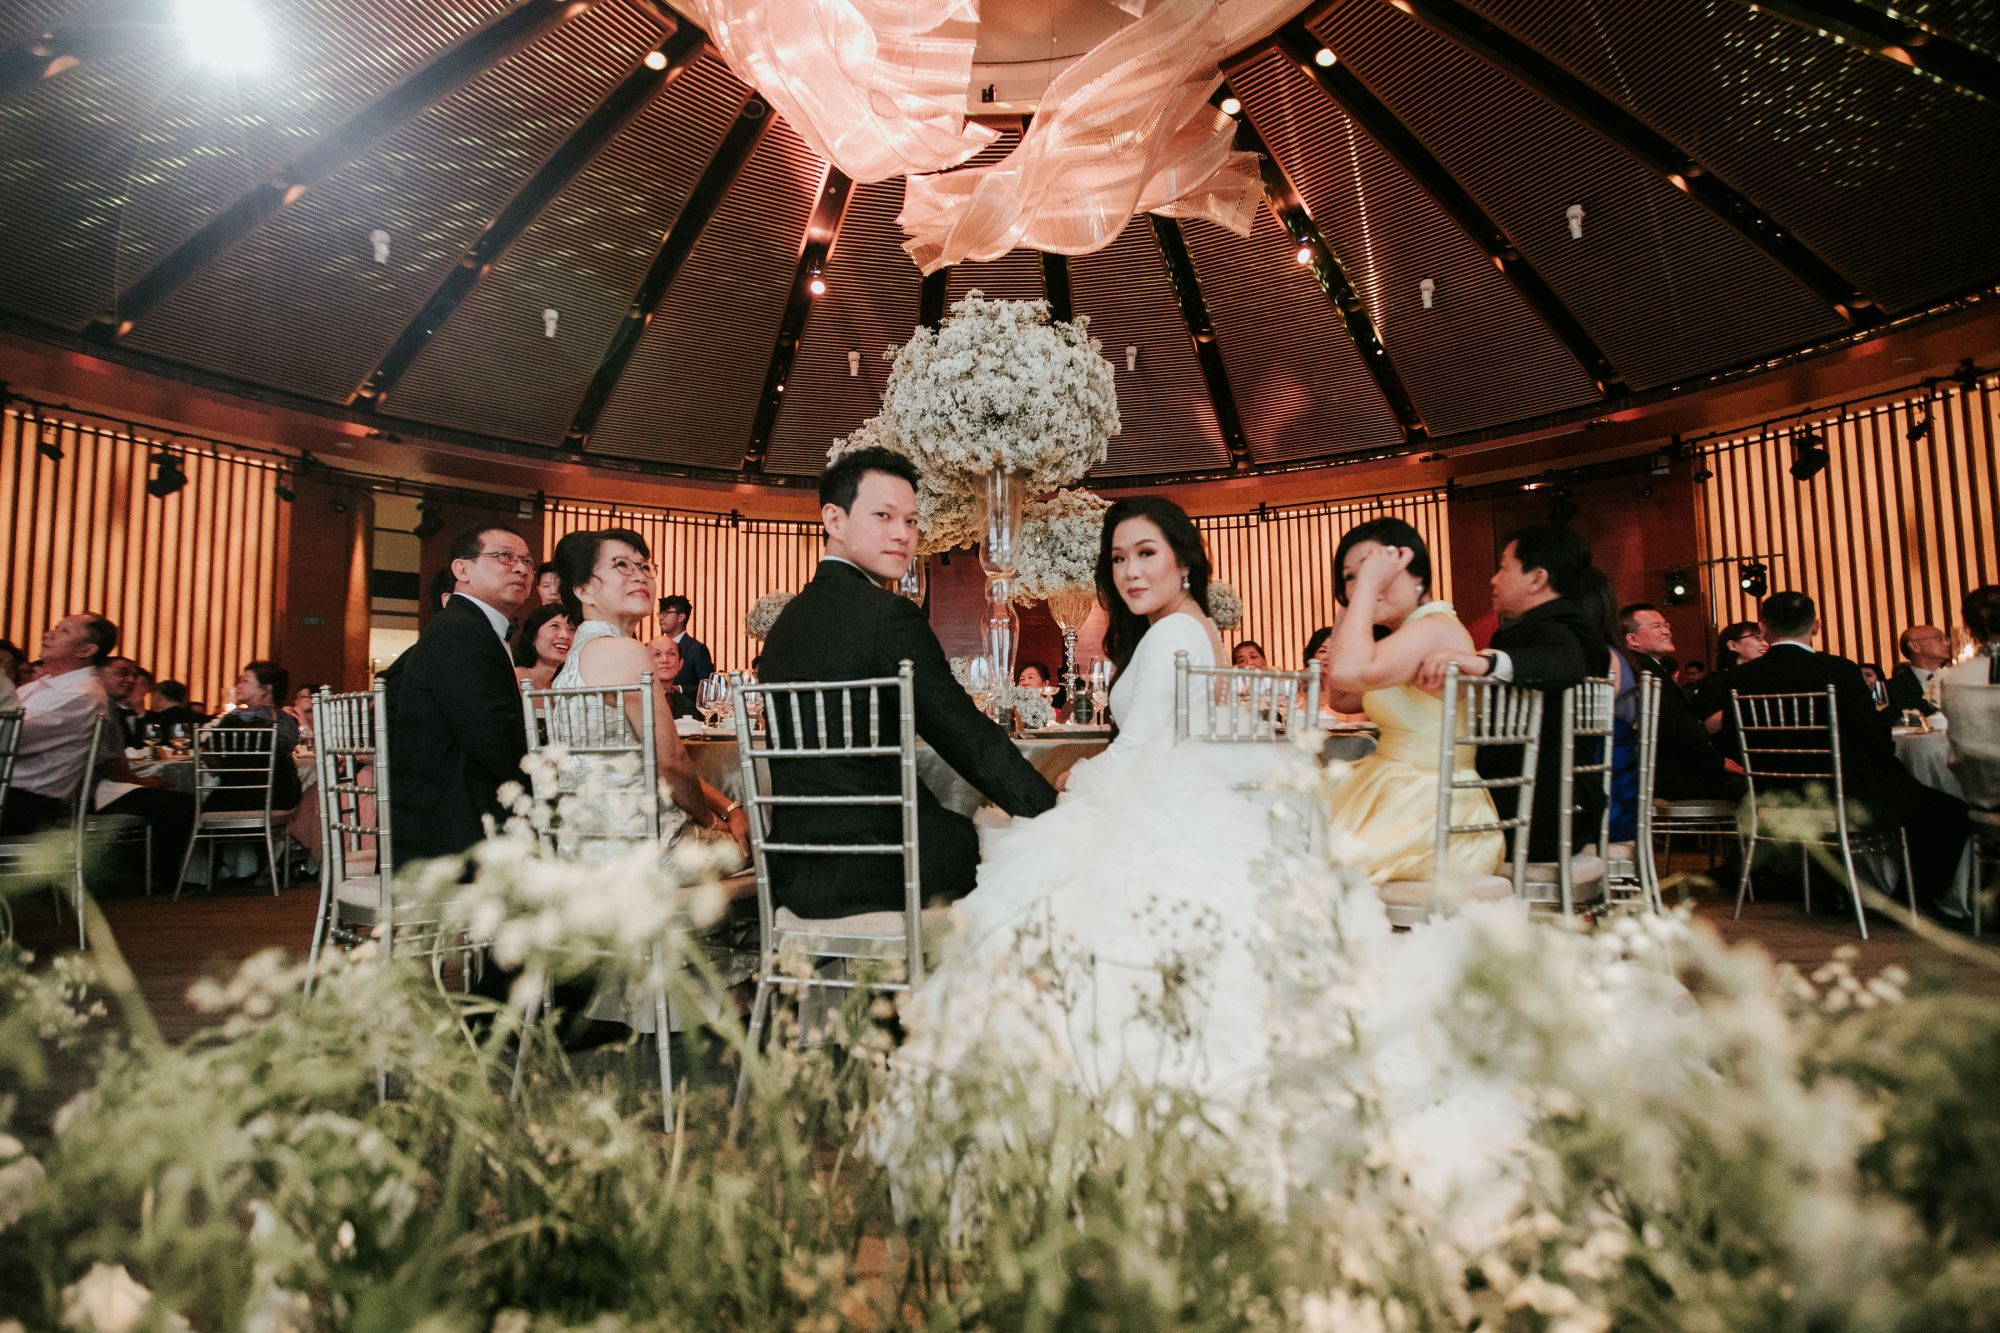 From Church Solemnisation to Wild After-Party: A Couple's Unforgettable Wedding Weekend in Singapore